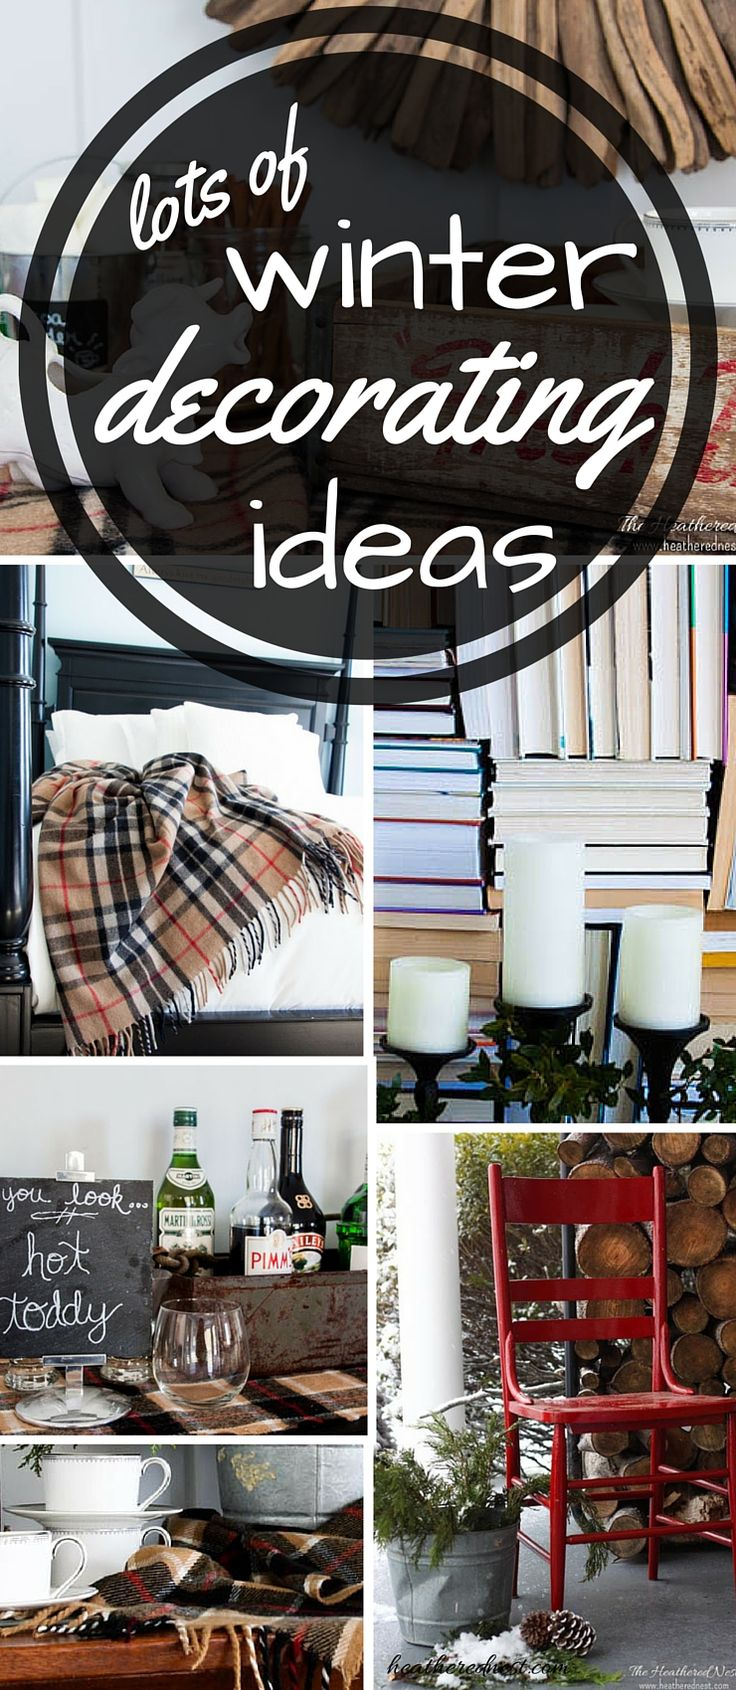 Great ideas to warm up winter decor from www.heatherednest.com THESE ARE SO…